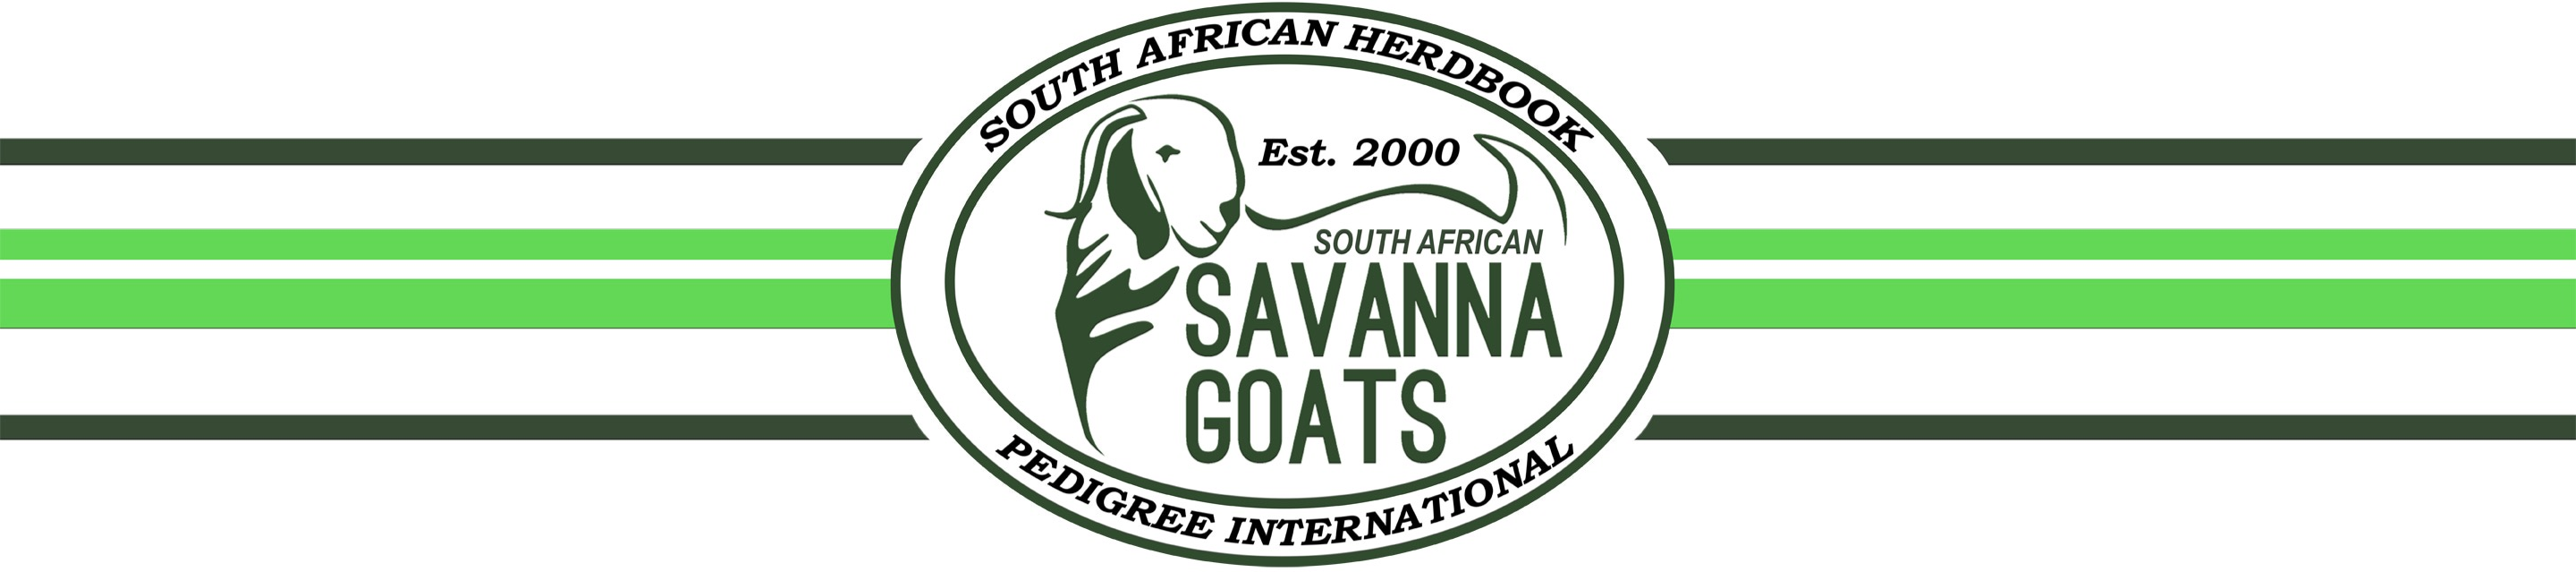 Active South African Savanna Breeders - Pedigree